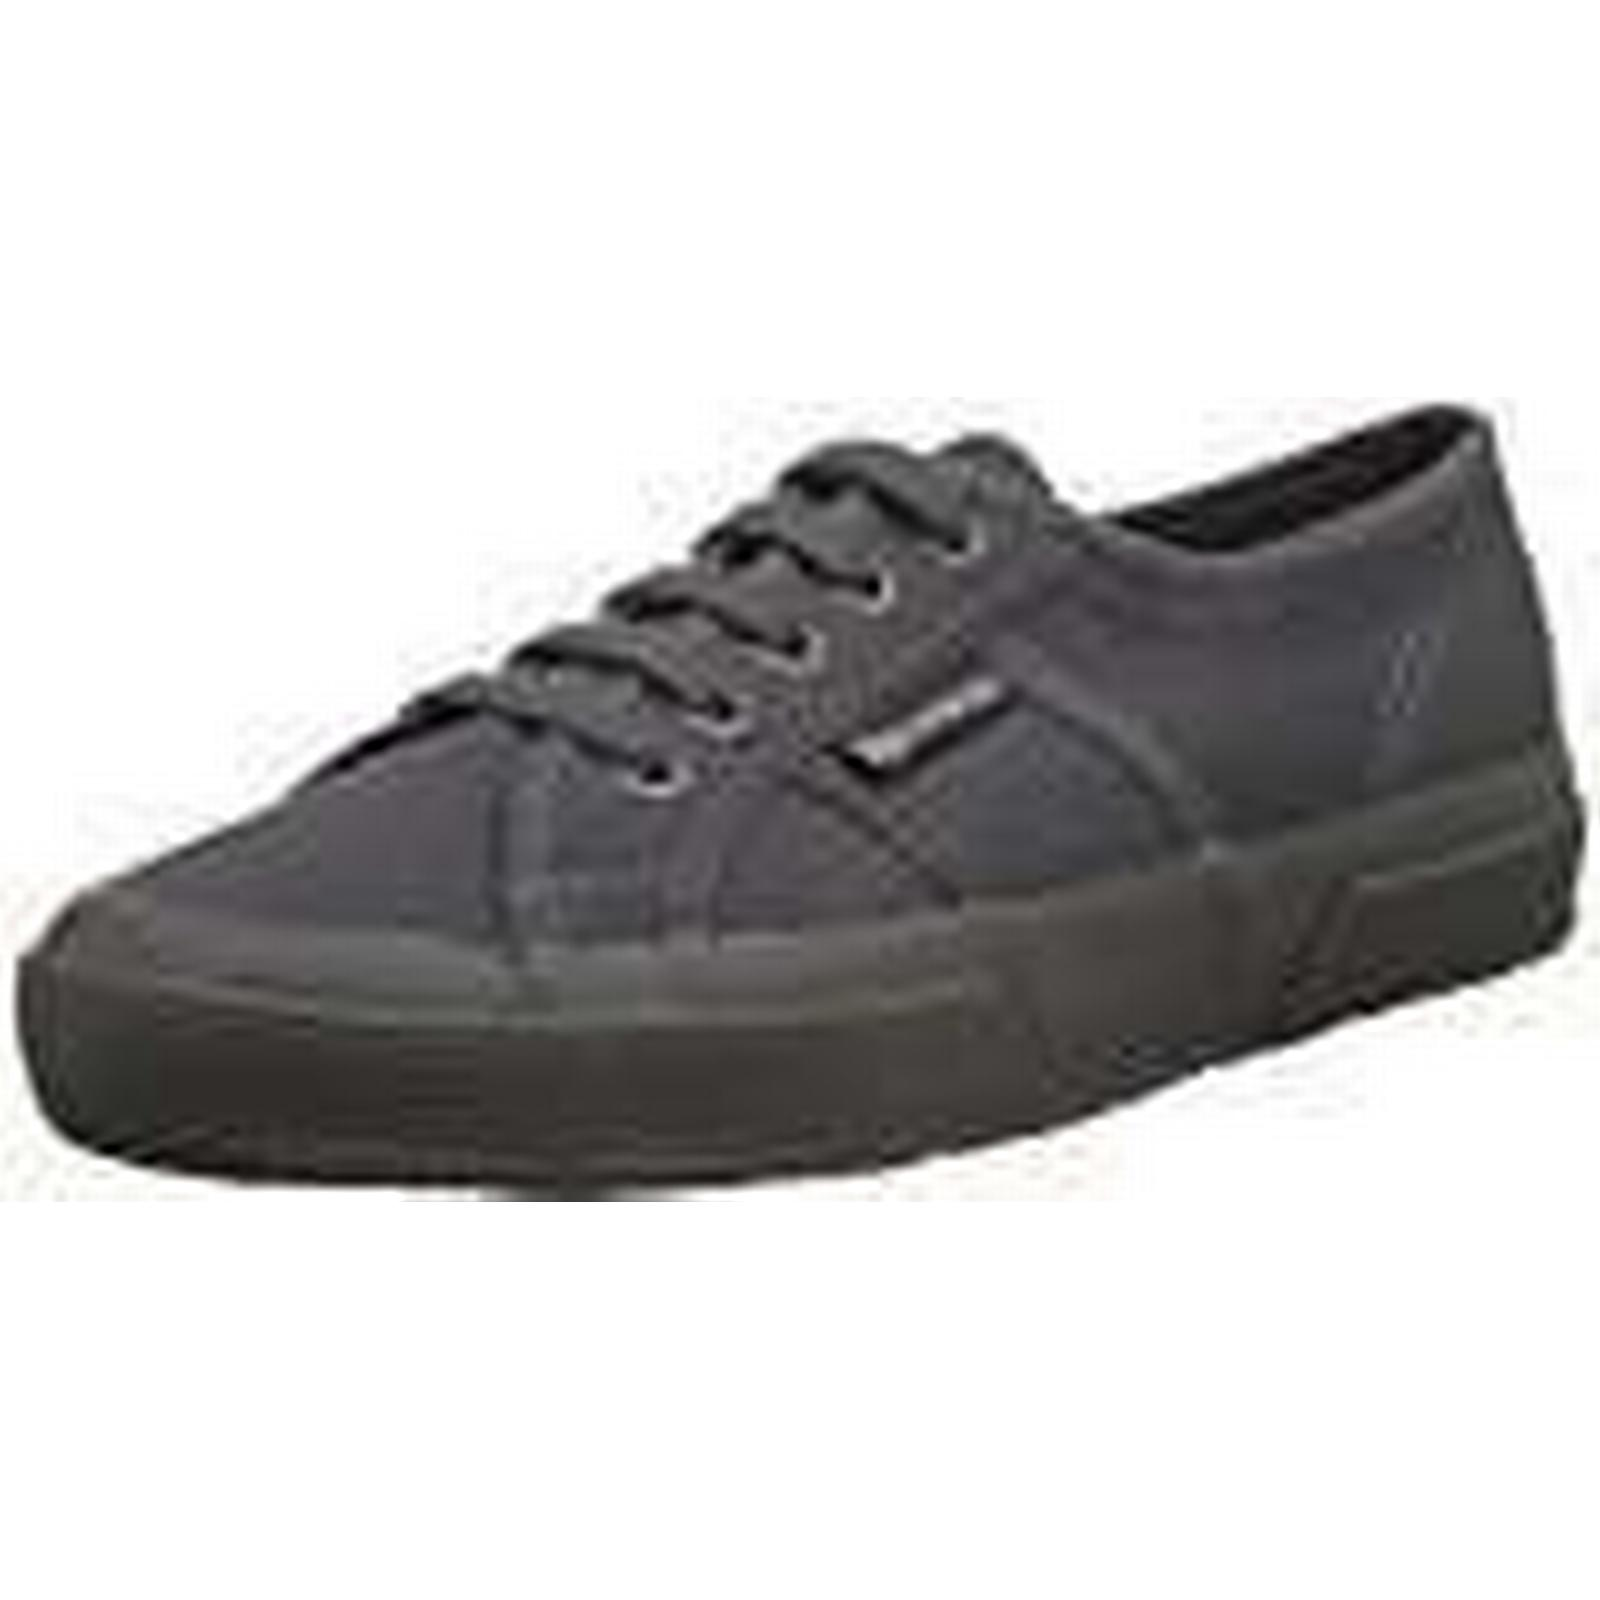 Superga (908), 2750 Cotu Classic, Unisex Adults' Low-Top Sneakers, Grey (908), Superga 5.5 UK (39 EU) 4e8fc4